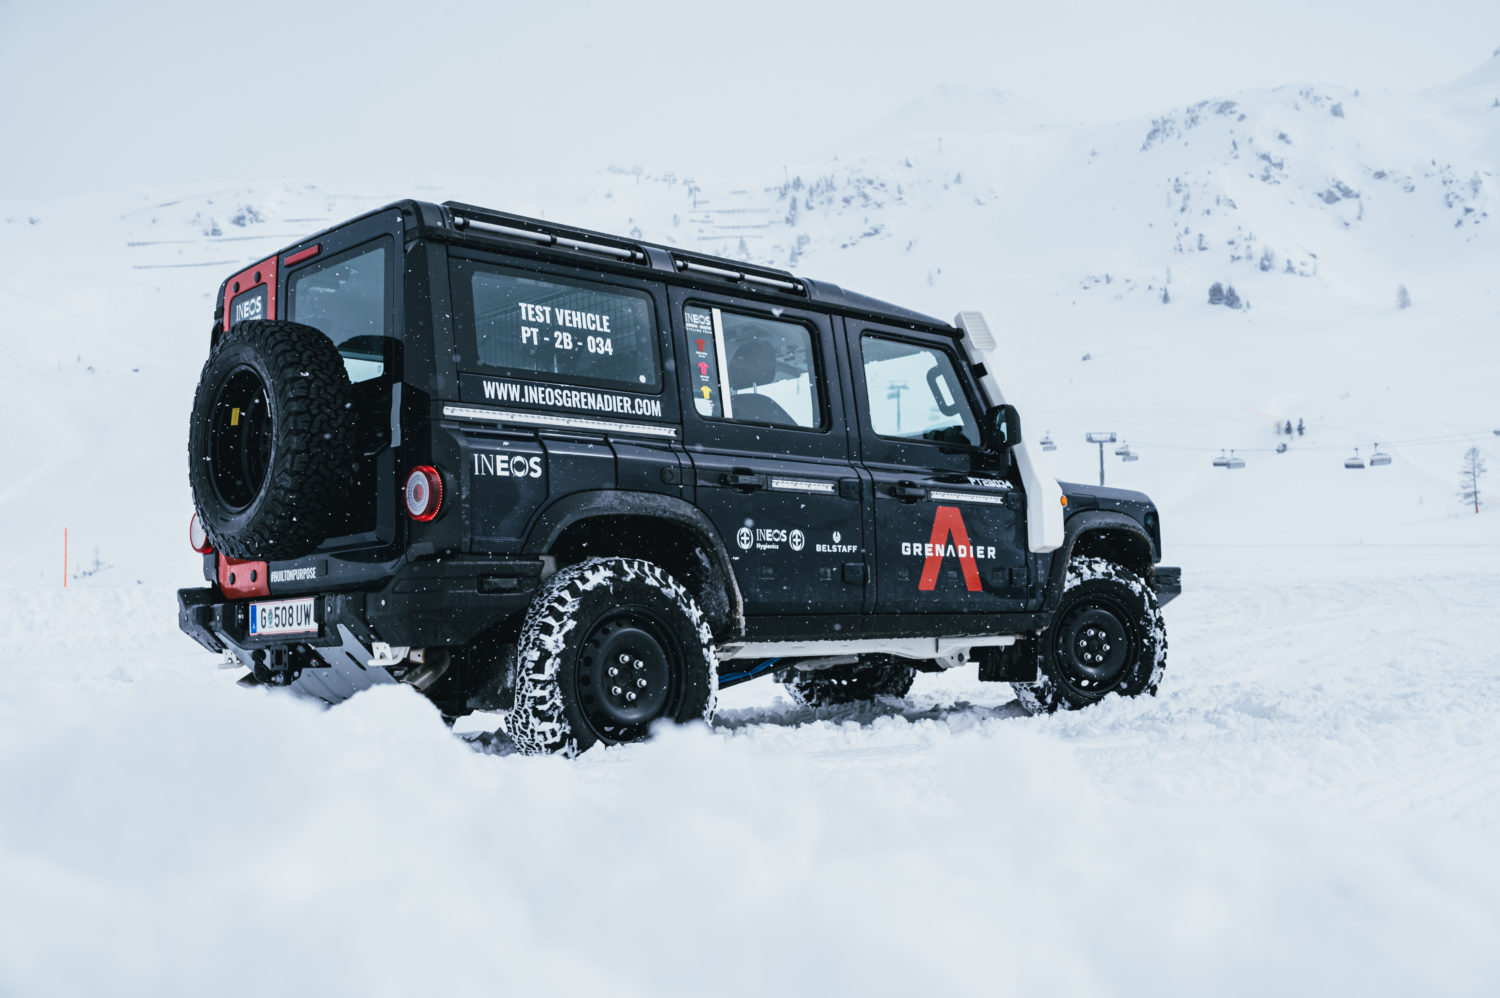 Analysis in the snow in Sweden proved out the 4x4's off-road performance